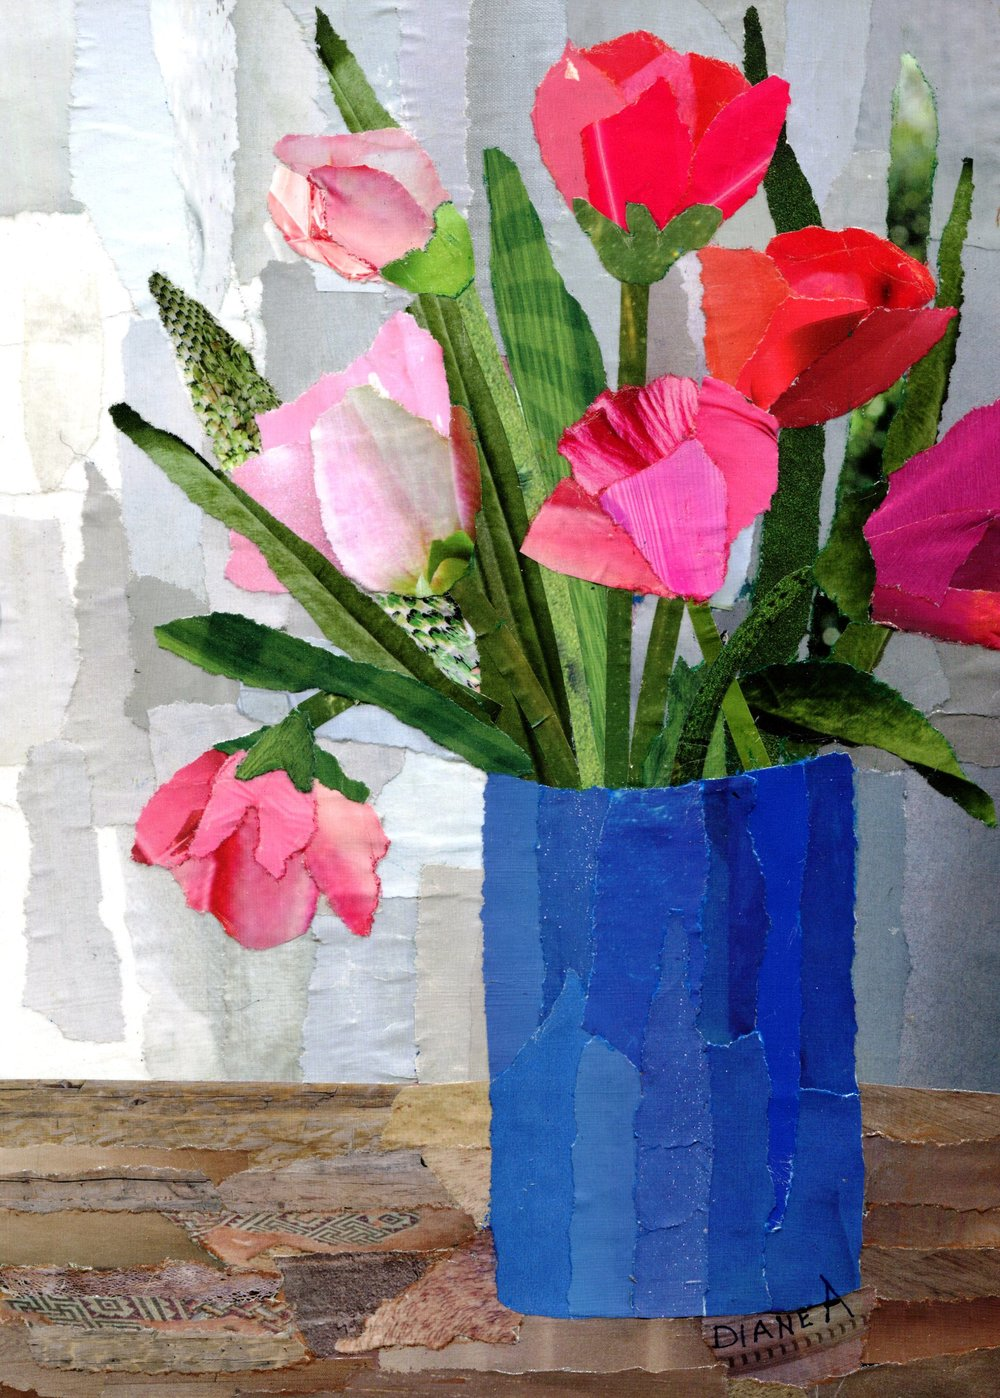 40C DIANE ALDWORTH, TULIPS, PAPER COLLAGE ON BOARD